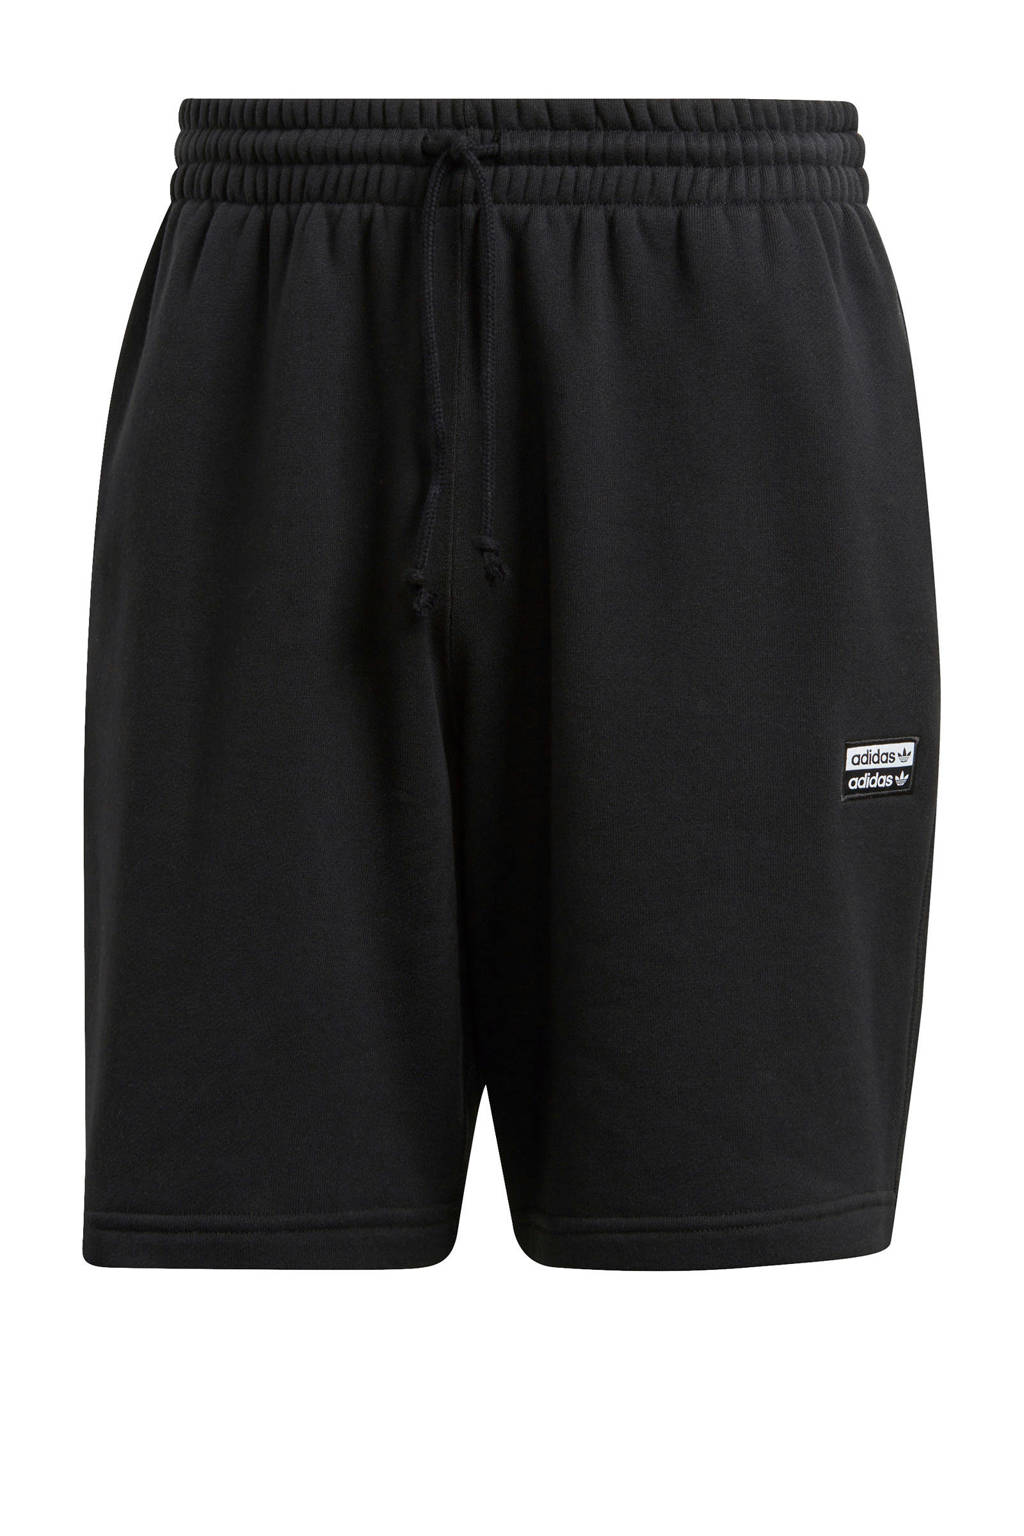 adidas Originals   short, Zwart